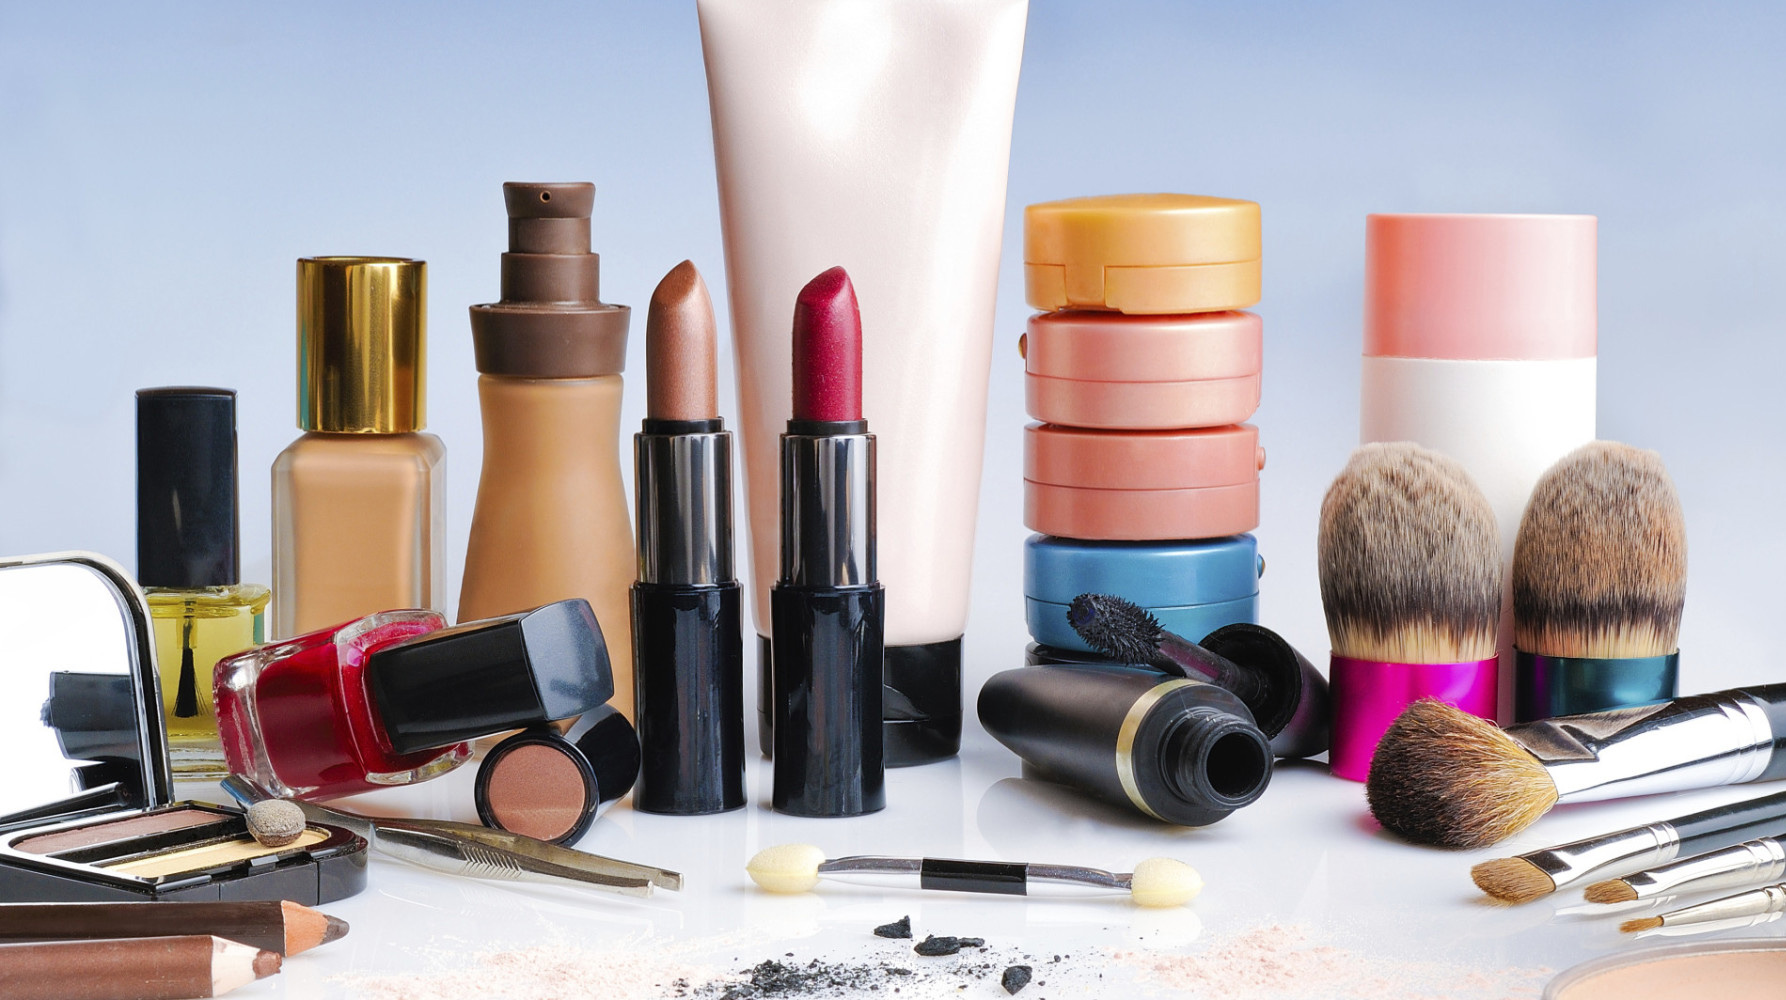 FDA busts fake cosmetic manufacturing company